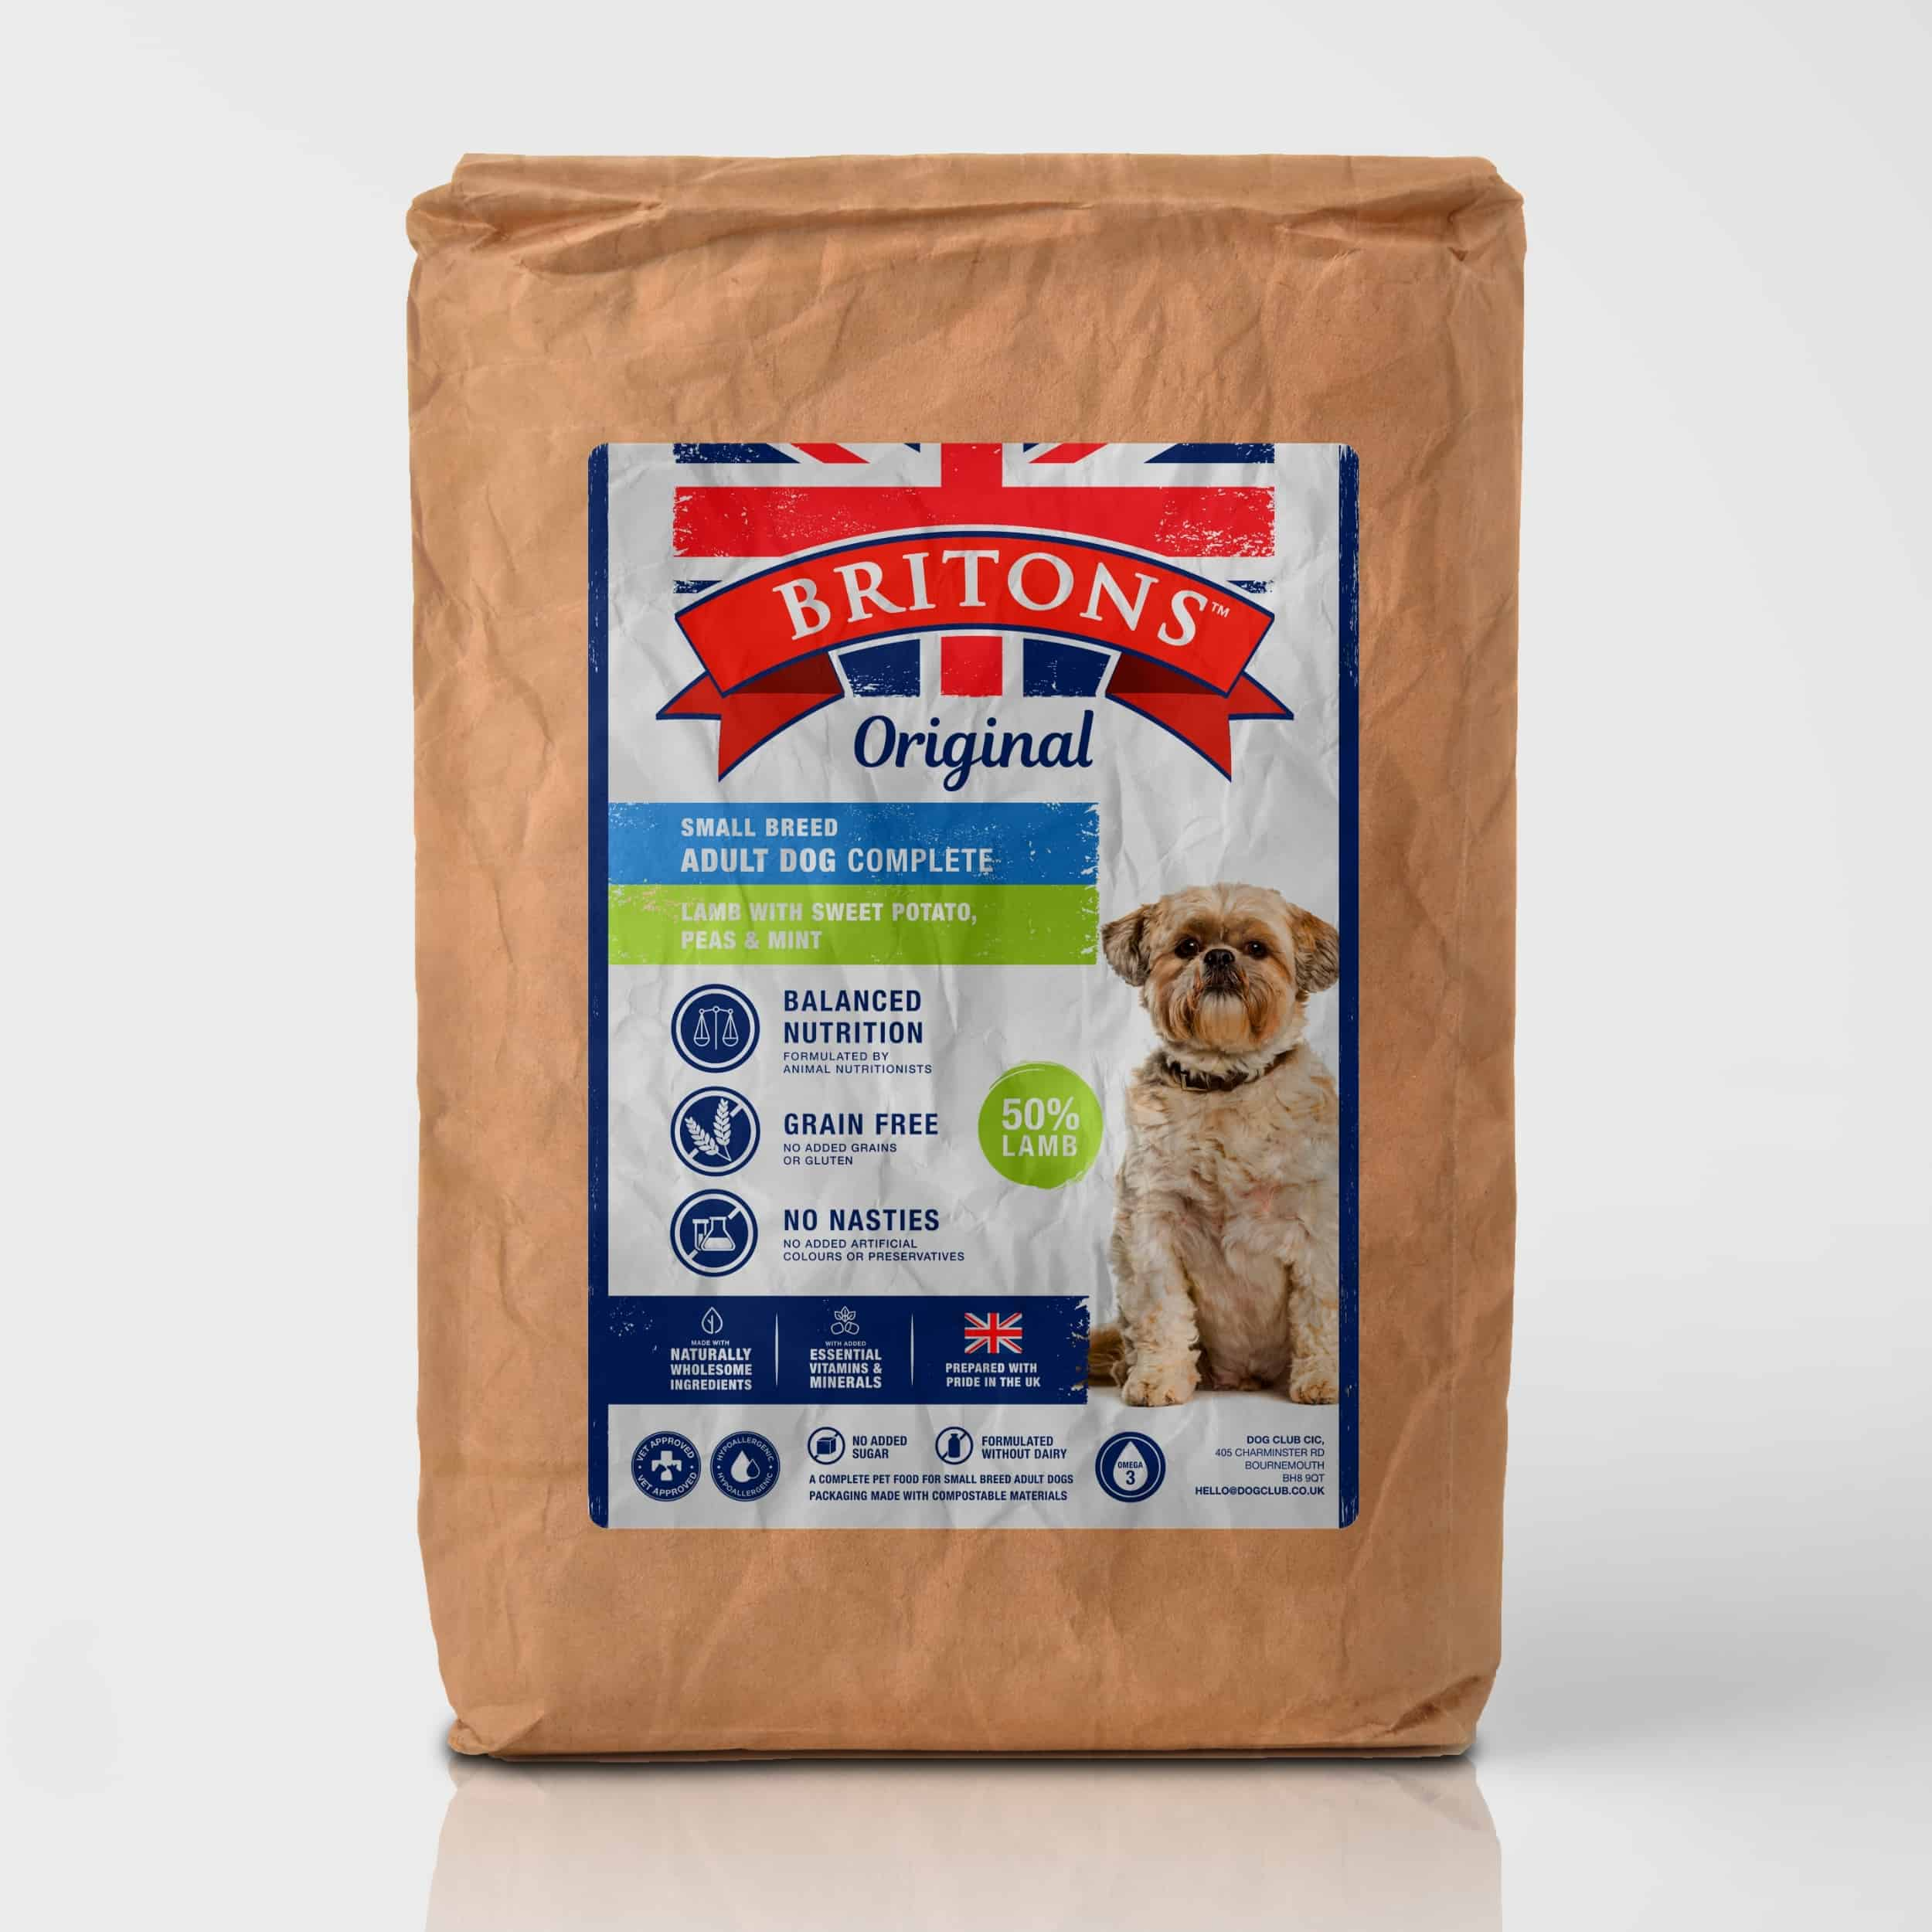 Small Breed Adult Dog, Grain Free, Complete Dry Food. Freshly Prepared Lamb with Sweet Potato, Peas & Mint. Britons Original.